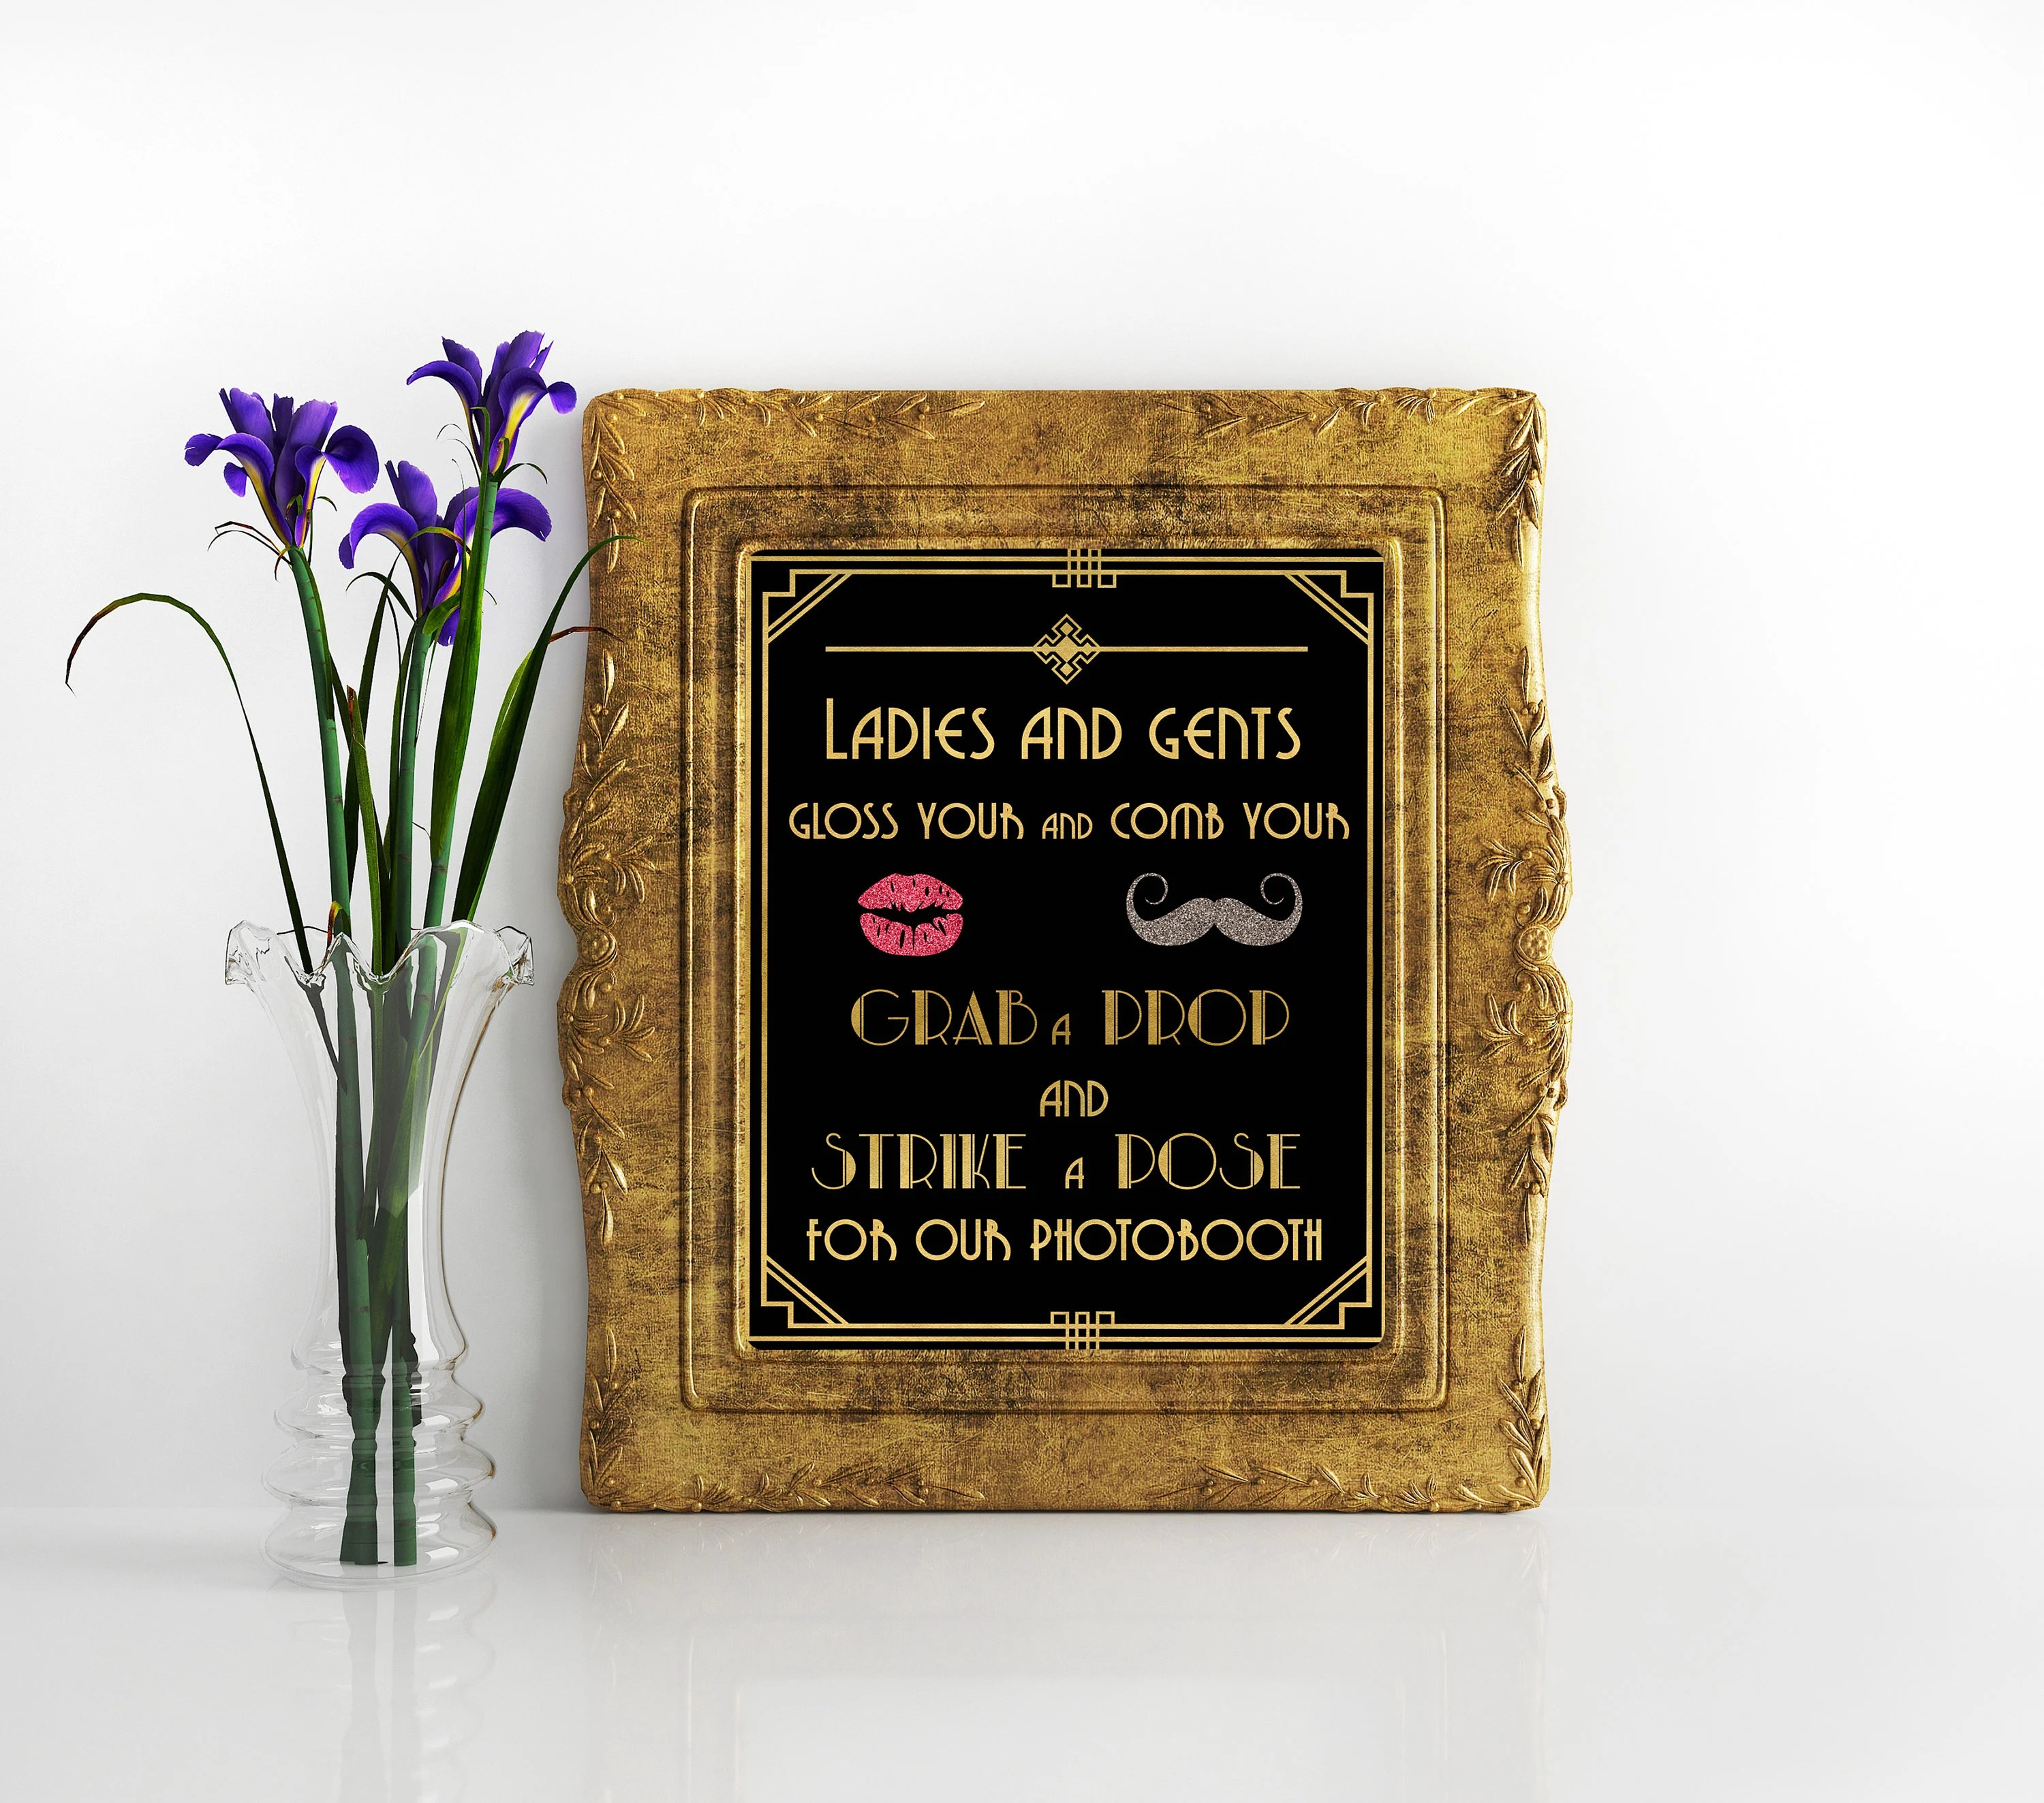 Decor Photobooth Great Gatsby Decorations Photobooth Grab A Prop And Strike A Pose Sign Great Gatsby Party Decor Photobooth Sign Gatsby Party Decorations